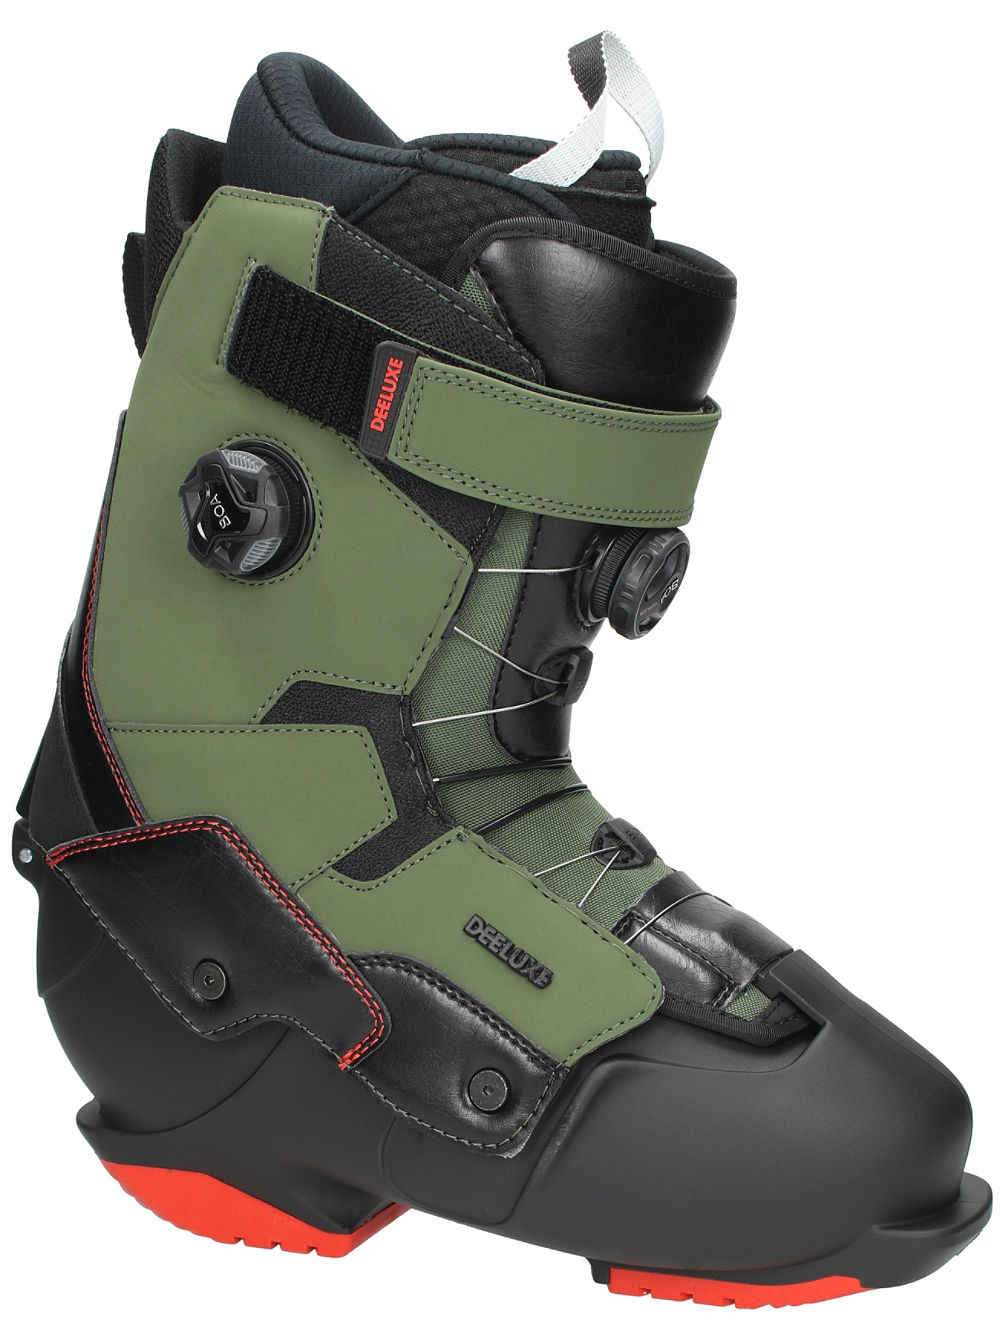 Ground Control Hardboots Snowboard